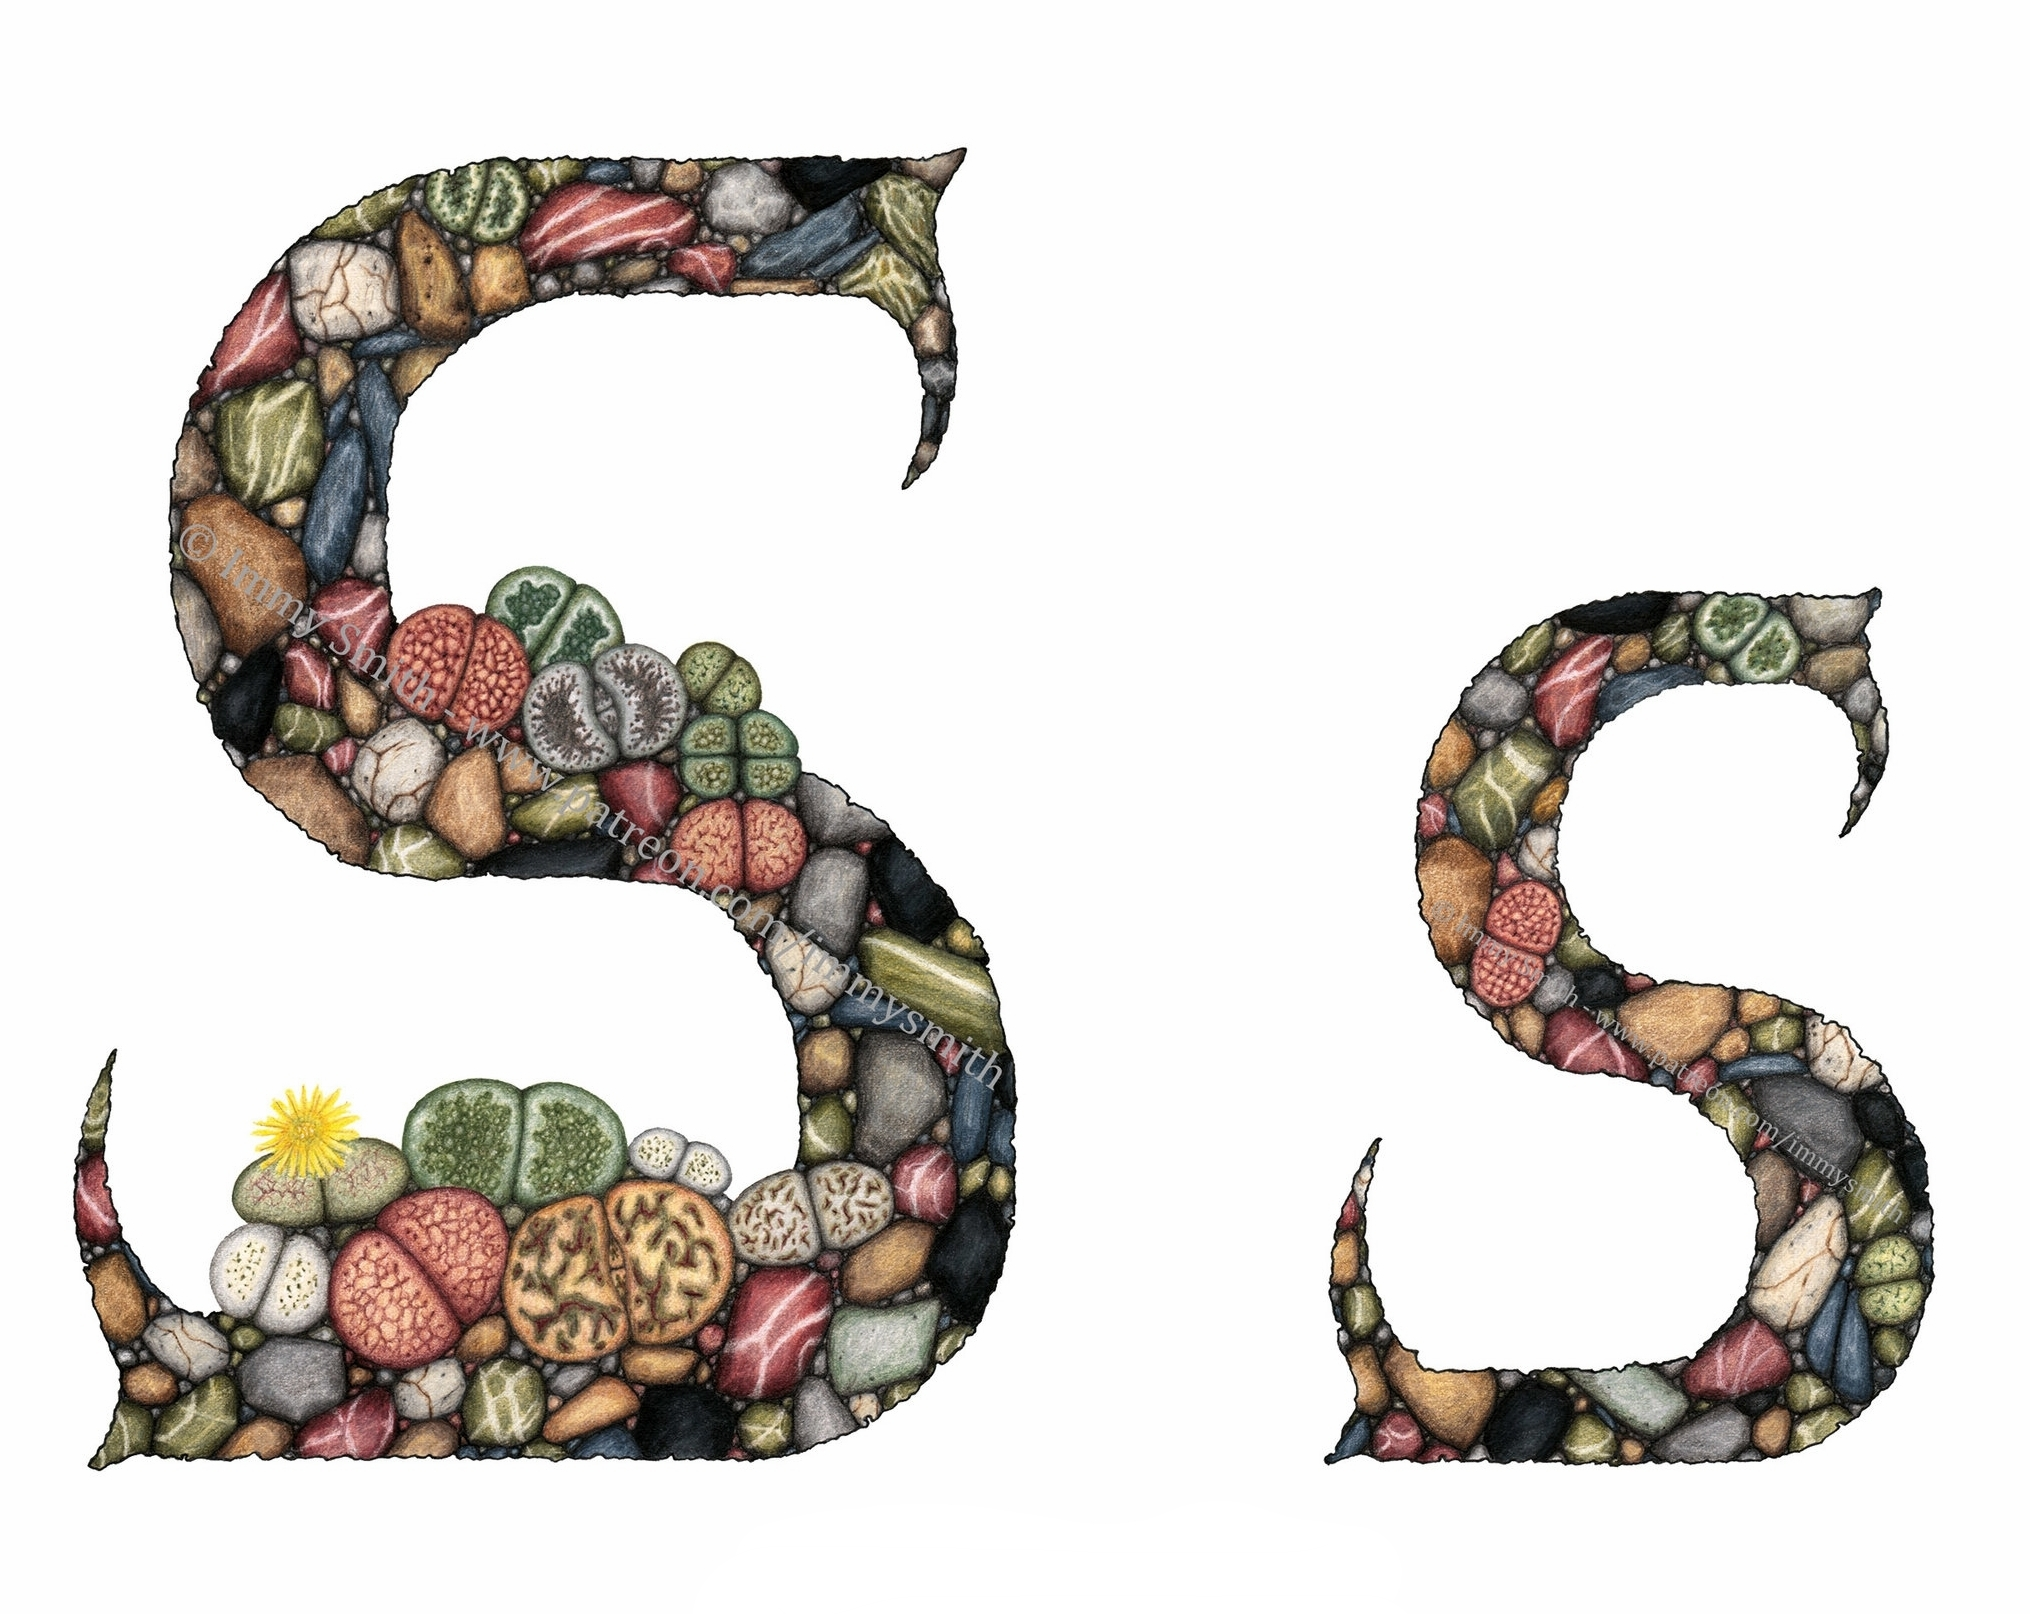 An illuminated pair of letter S's, filled with a pattern of small stones and stone plants (lithops species) in shades of greys, browns, olive and earth greens, maroon, and slate blue